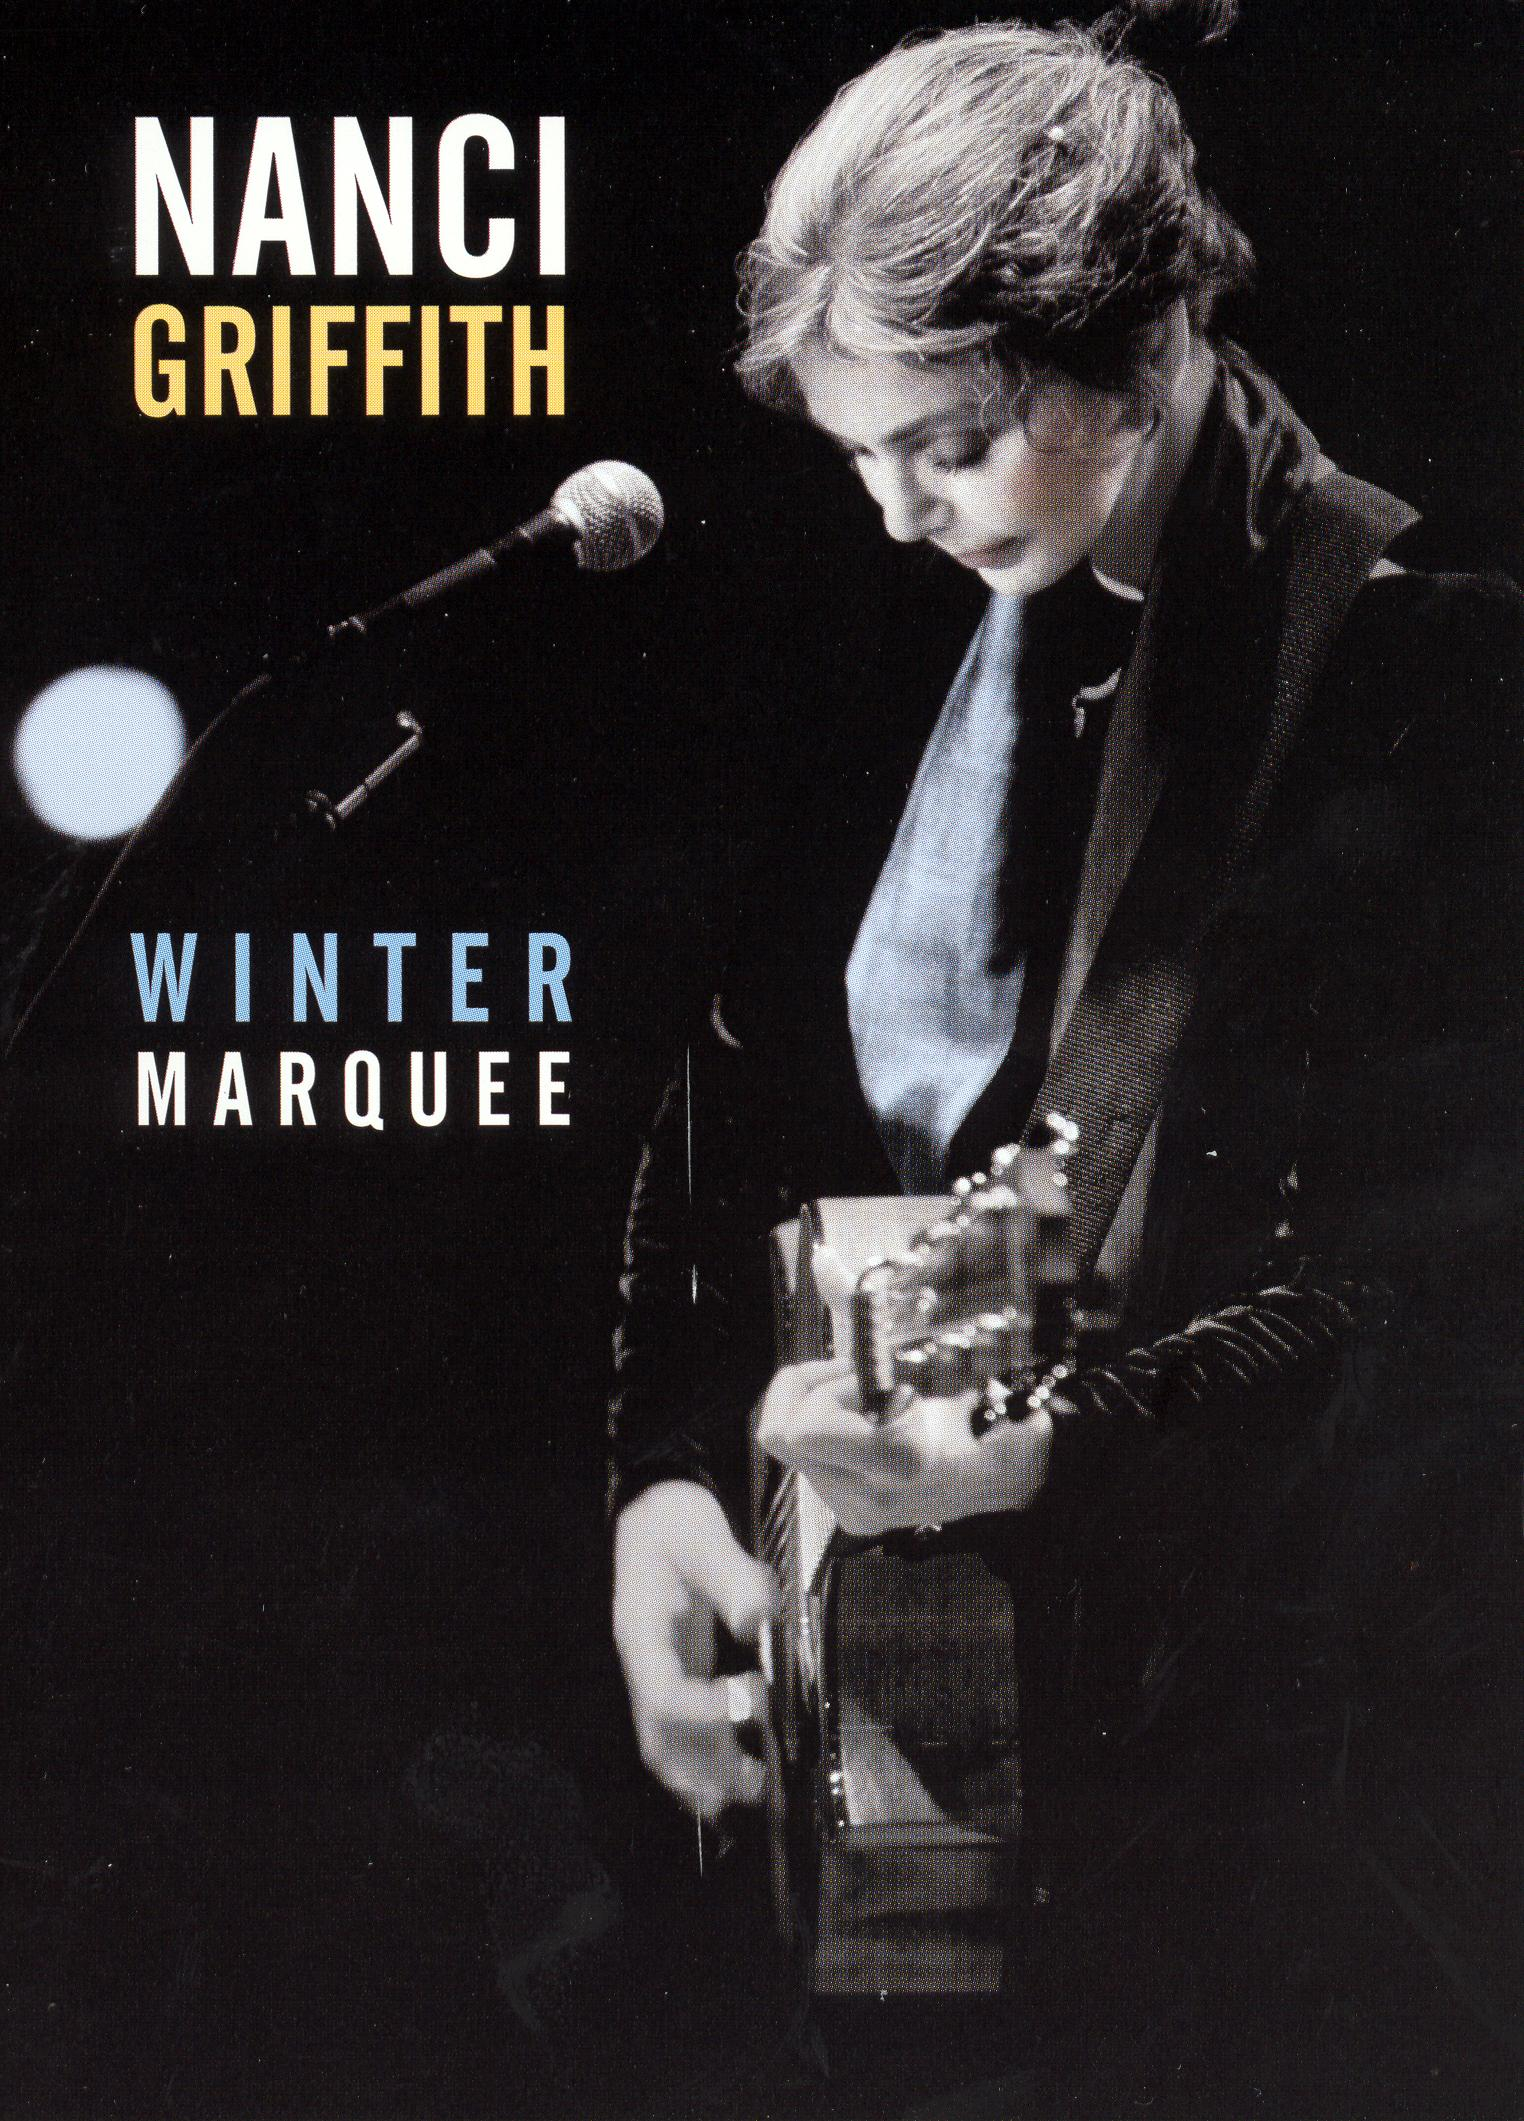 Nanci Griffith: Winter Marquee